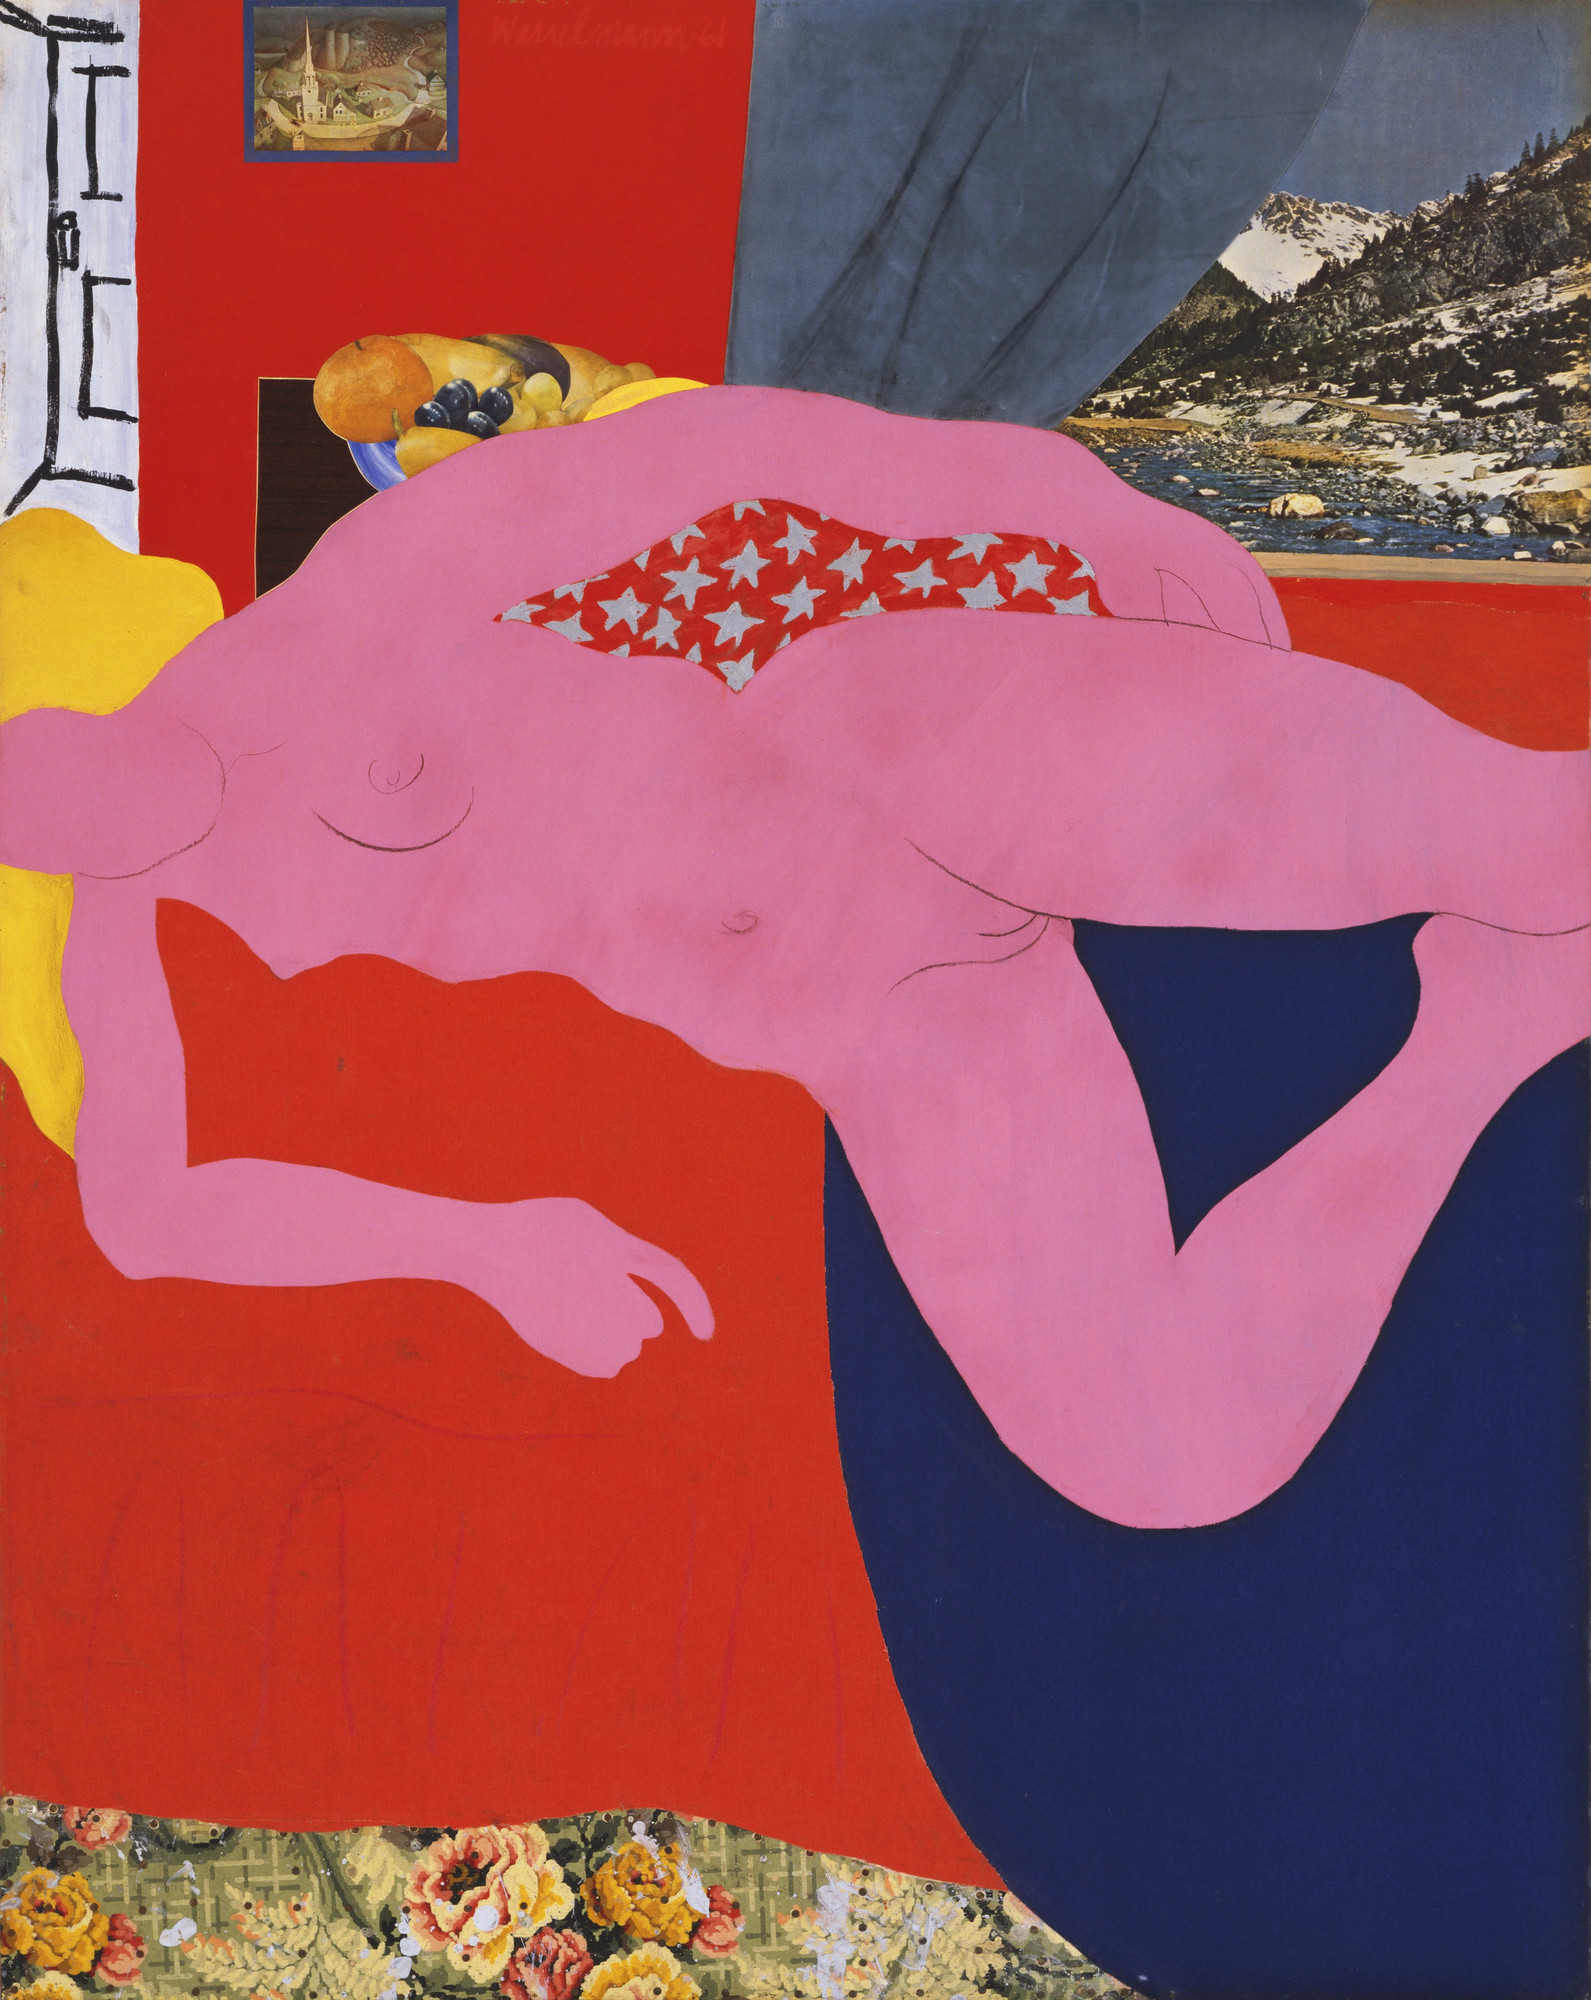 Tom Wesselmann. Great American Nude, 2. 1961